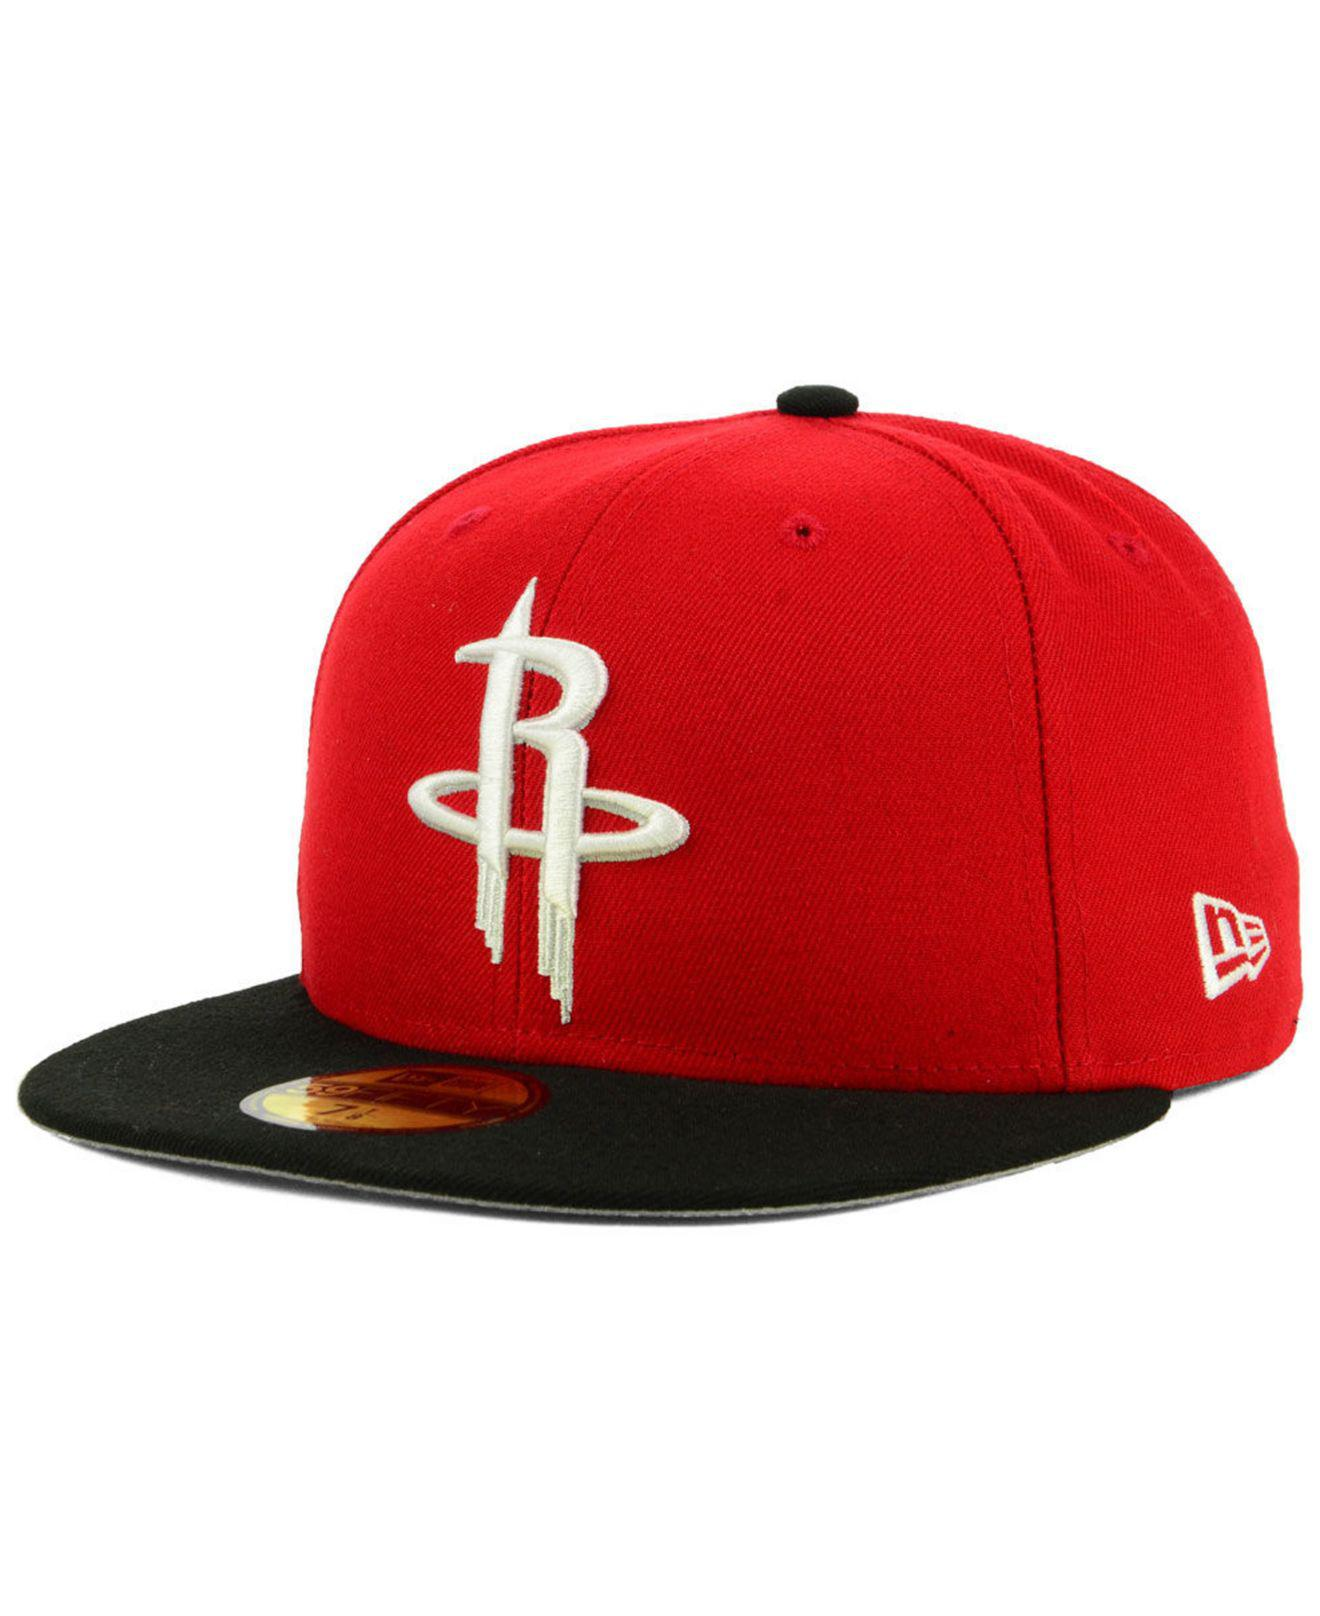 new arrival 4c8a1 256fc KTZ. Men s Red Houston Rockets Basic 2 Tone 59fifty Fitted Cap